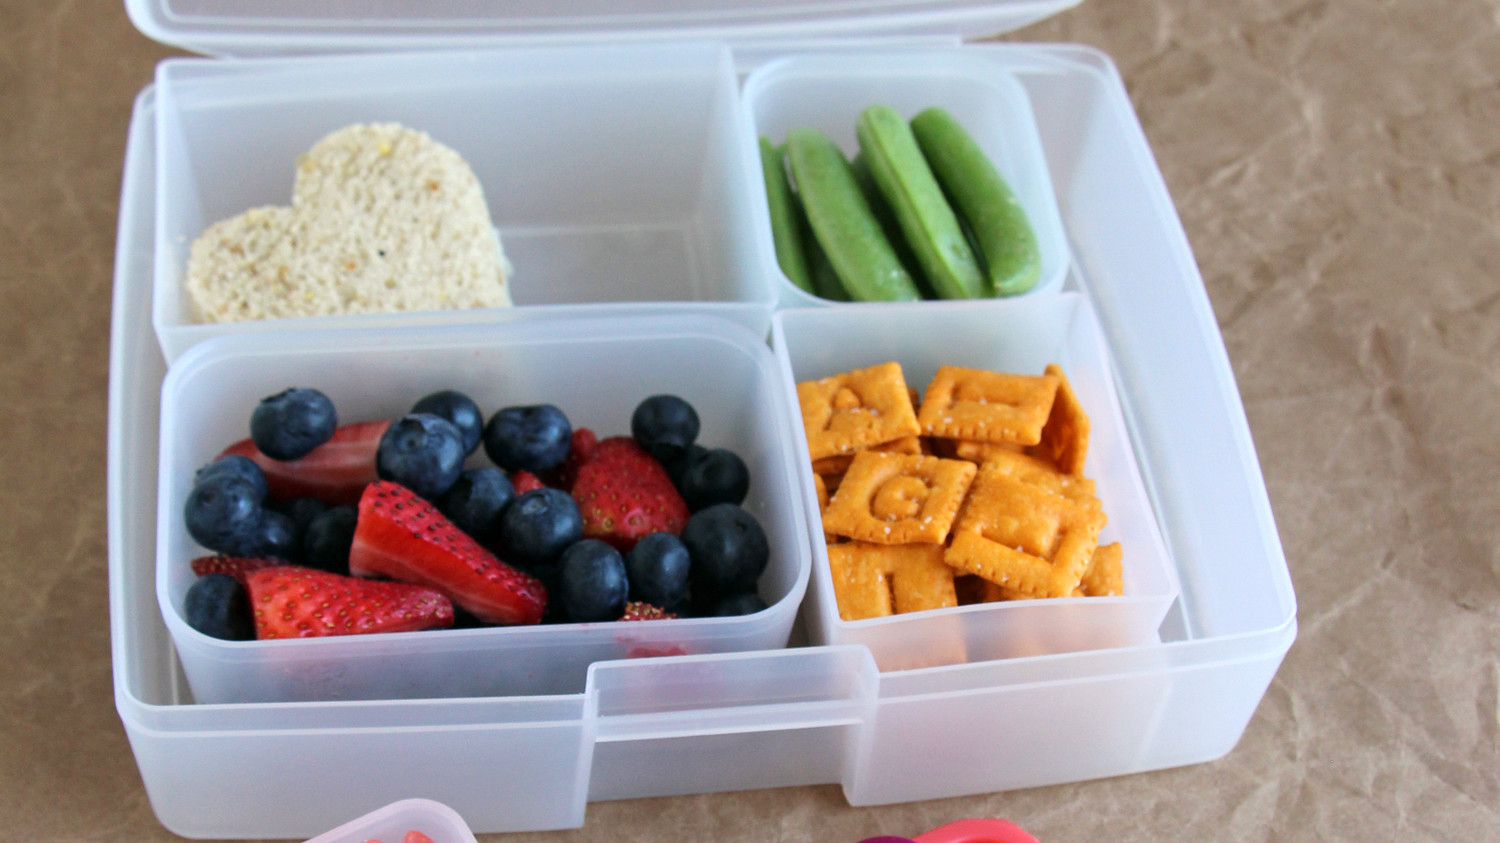 Our 10 Top Lunch Boxes for Back to School